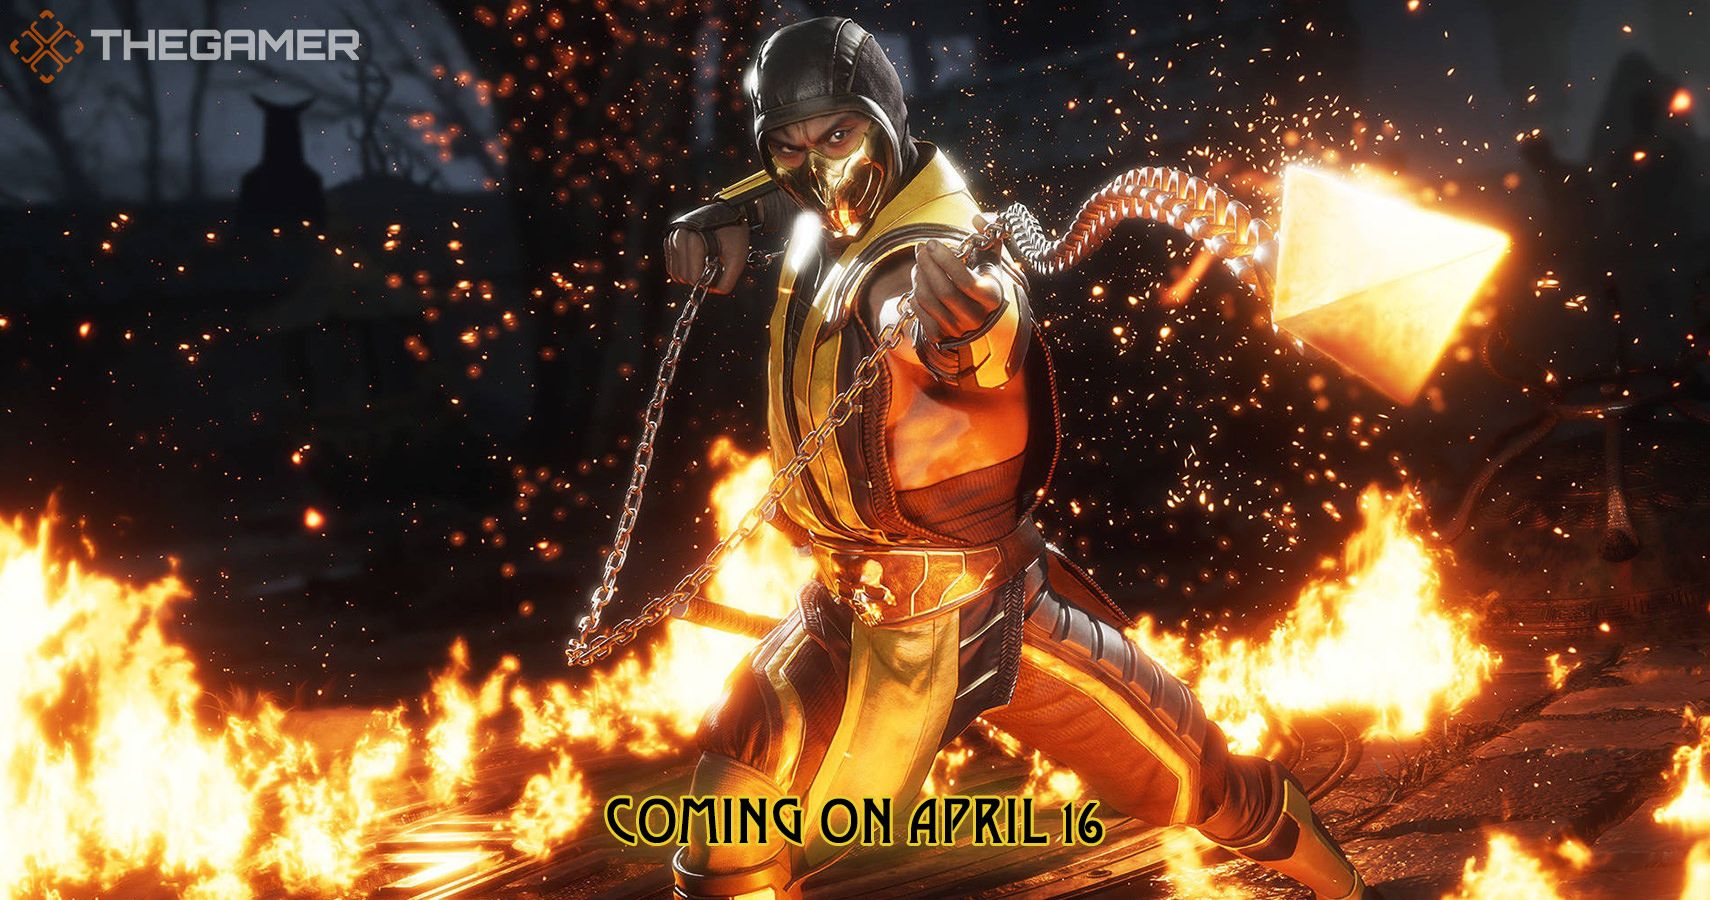 New Mortal Kombat Movie Gets Cool Animated Posters ...